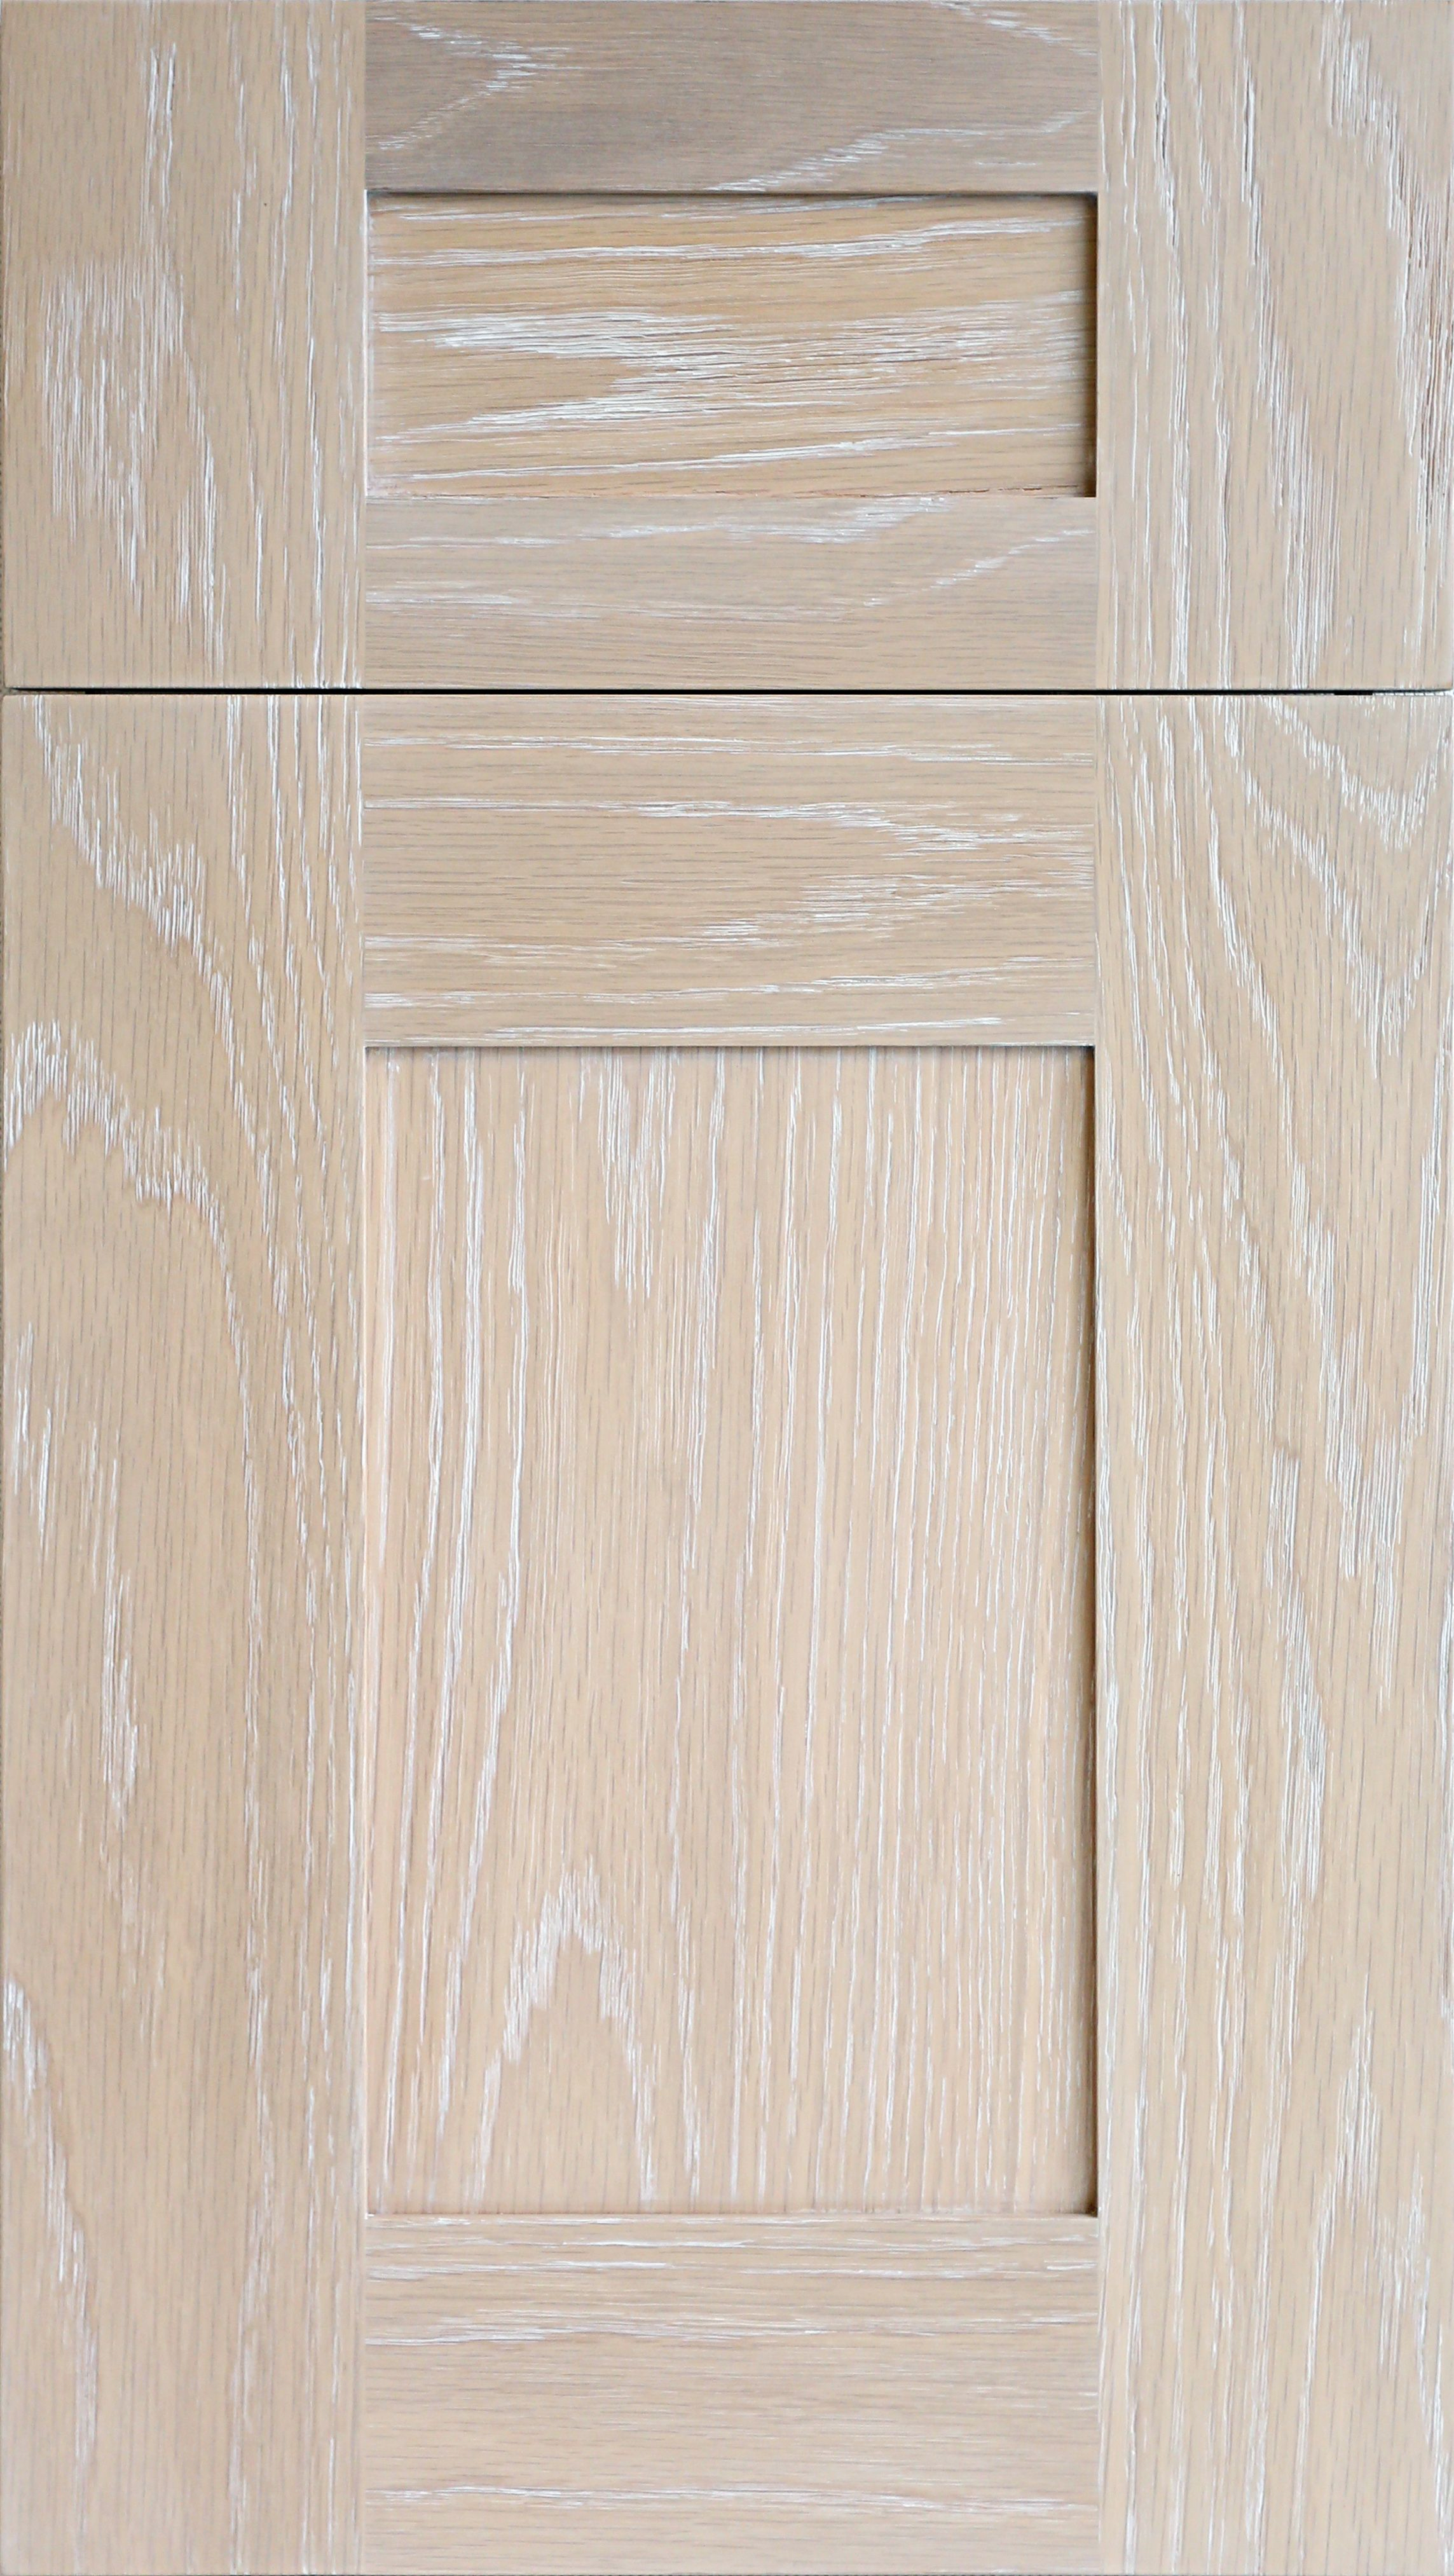 Meridian Wr Door In Plainsawn White Oak In Driftwood Stain With Wire Brush Glaze In Snow Driftwood Stain White Oak Kitchen Staining Cabinets